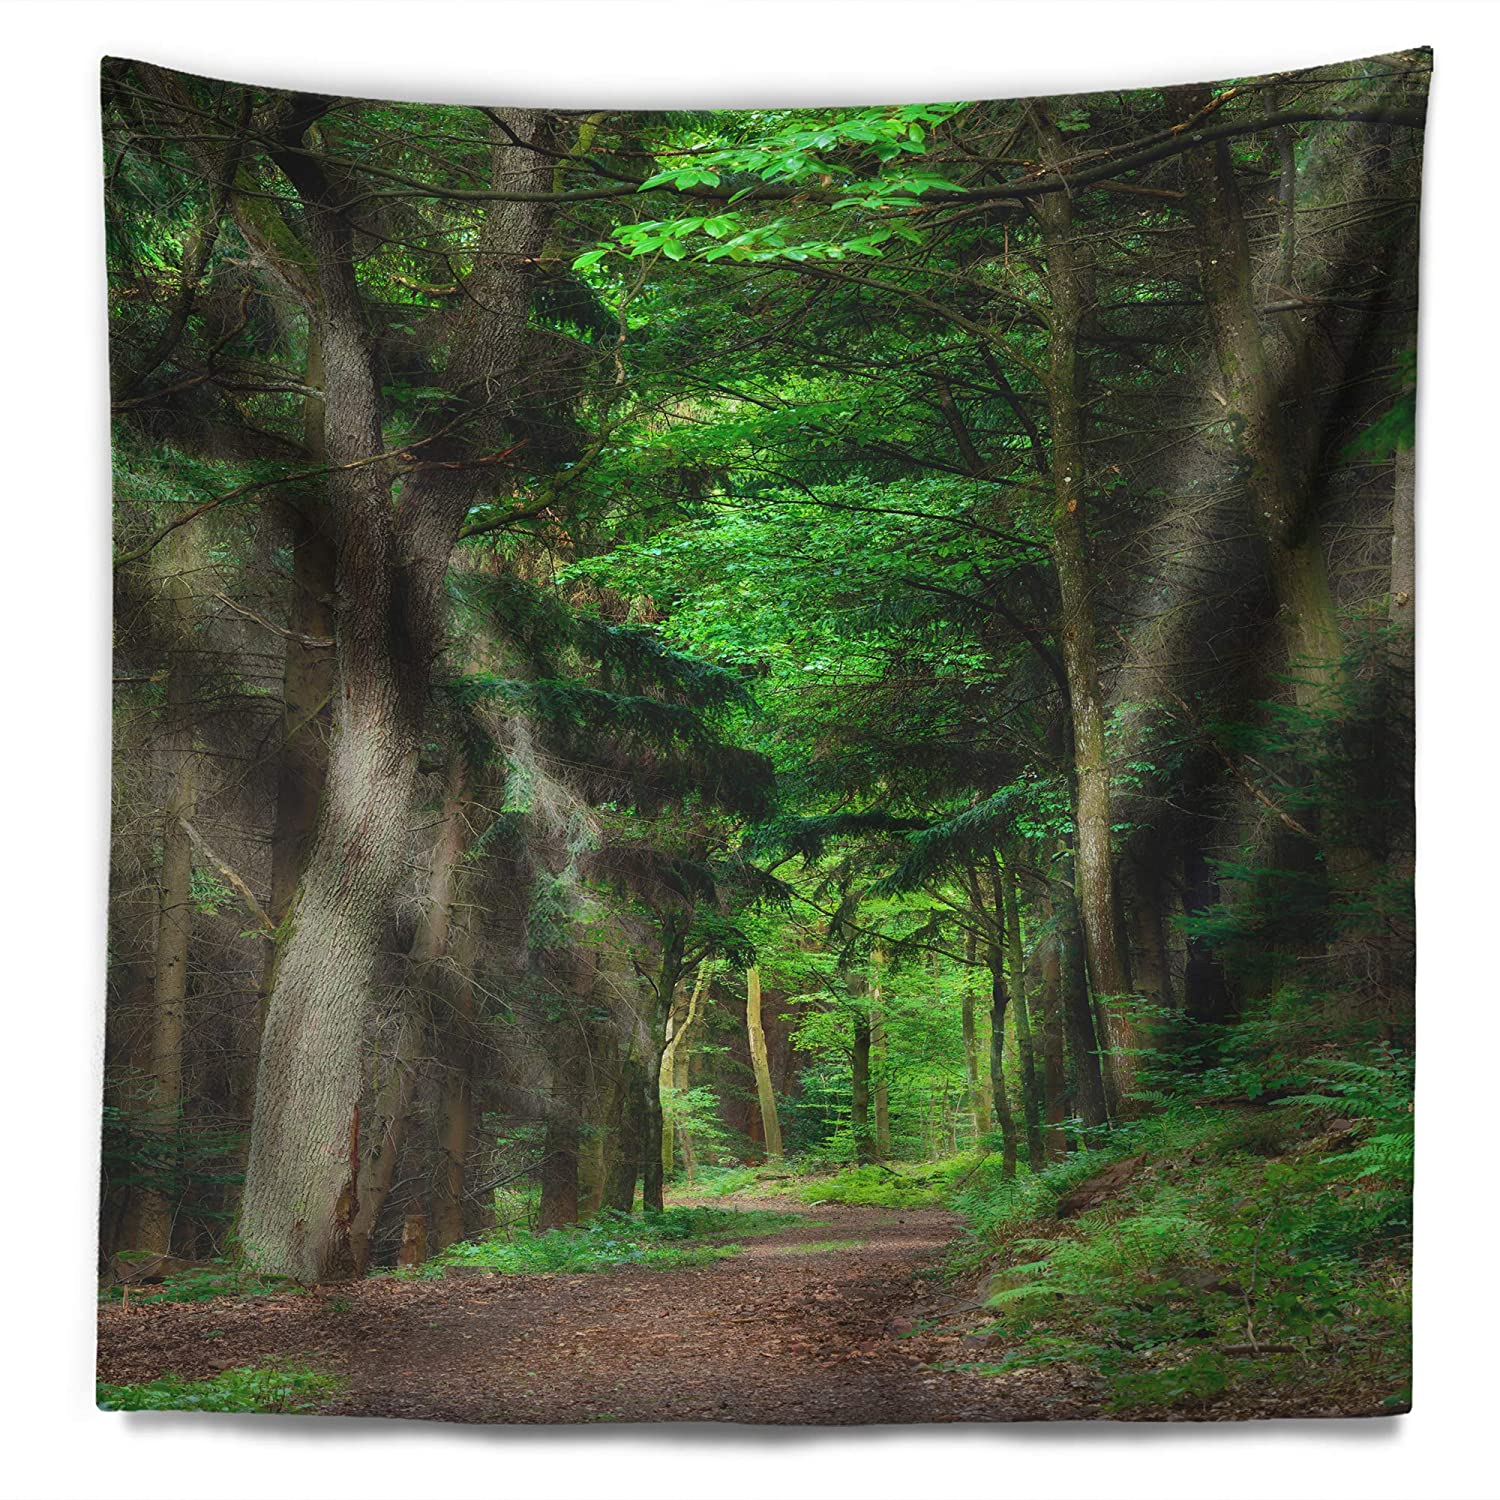 Created On Lightweight Polyester Fabric 78 in x 92 in Designart TAP11769-78-92  Dreamy Greenery in Dense Forest Blanket D/écor Art for Home and Office Wall Tapestry XX-Large